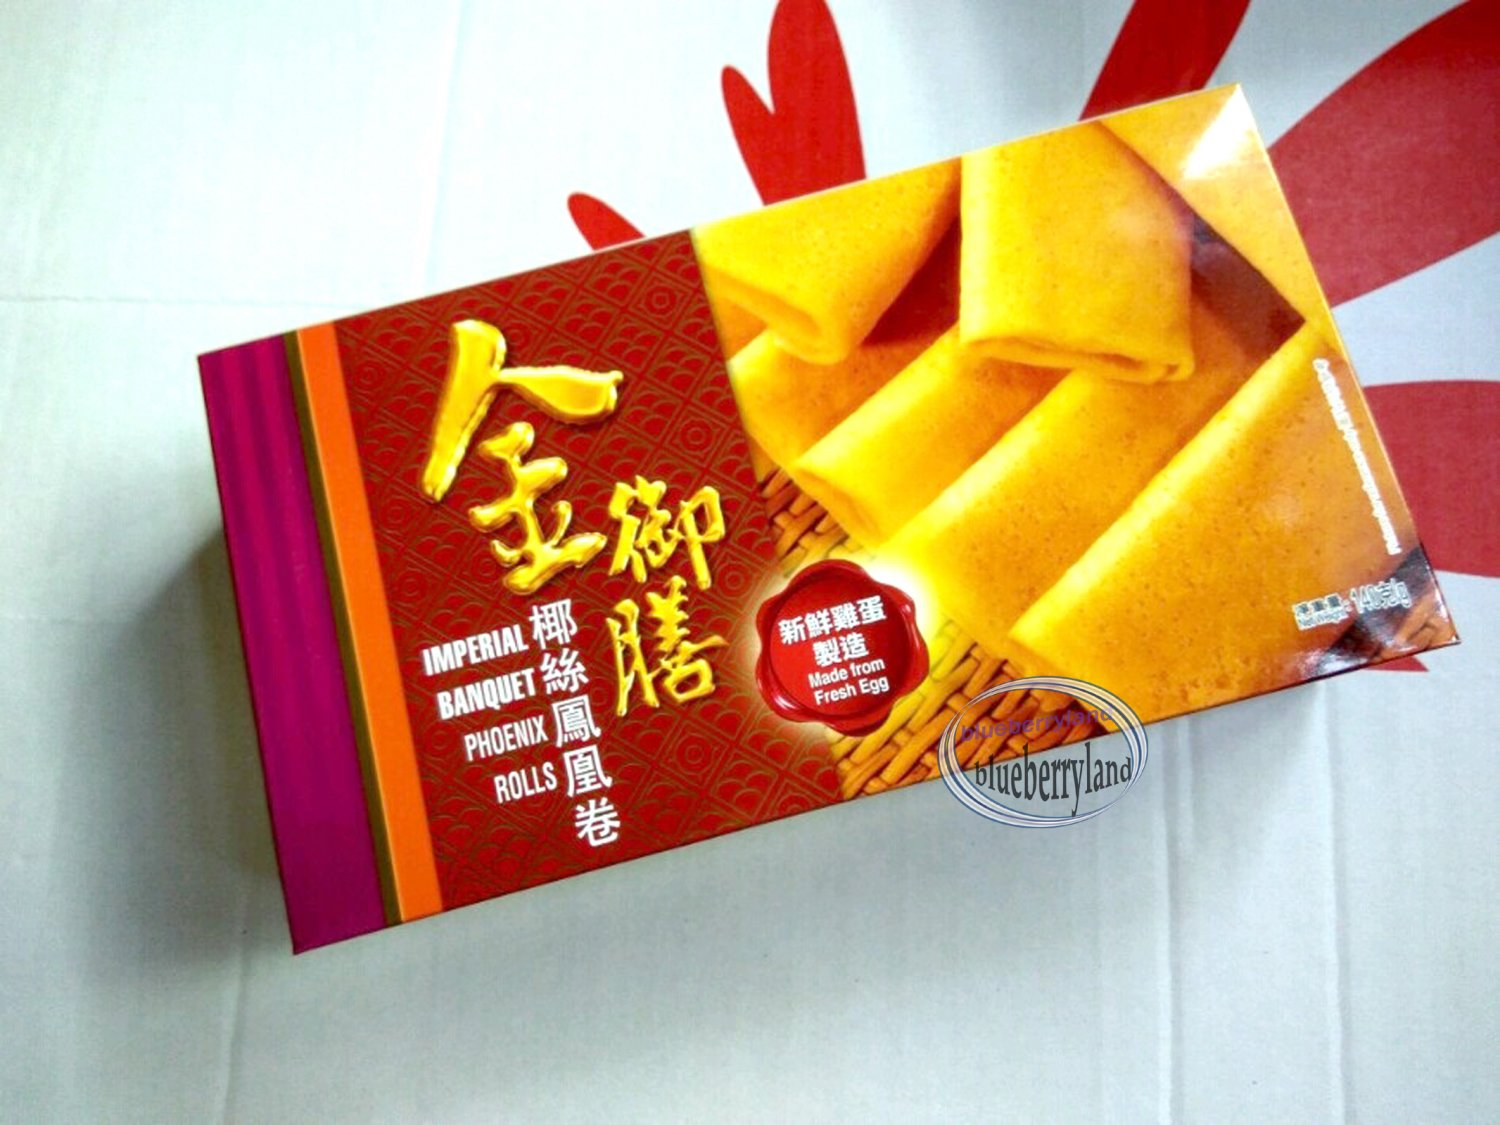 Imperial Banquet Phoenix Egg Roll sweets snacks EggRoll cookies 140g